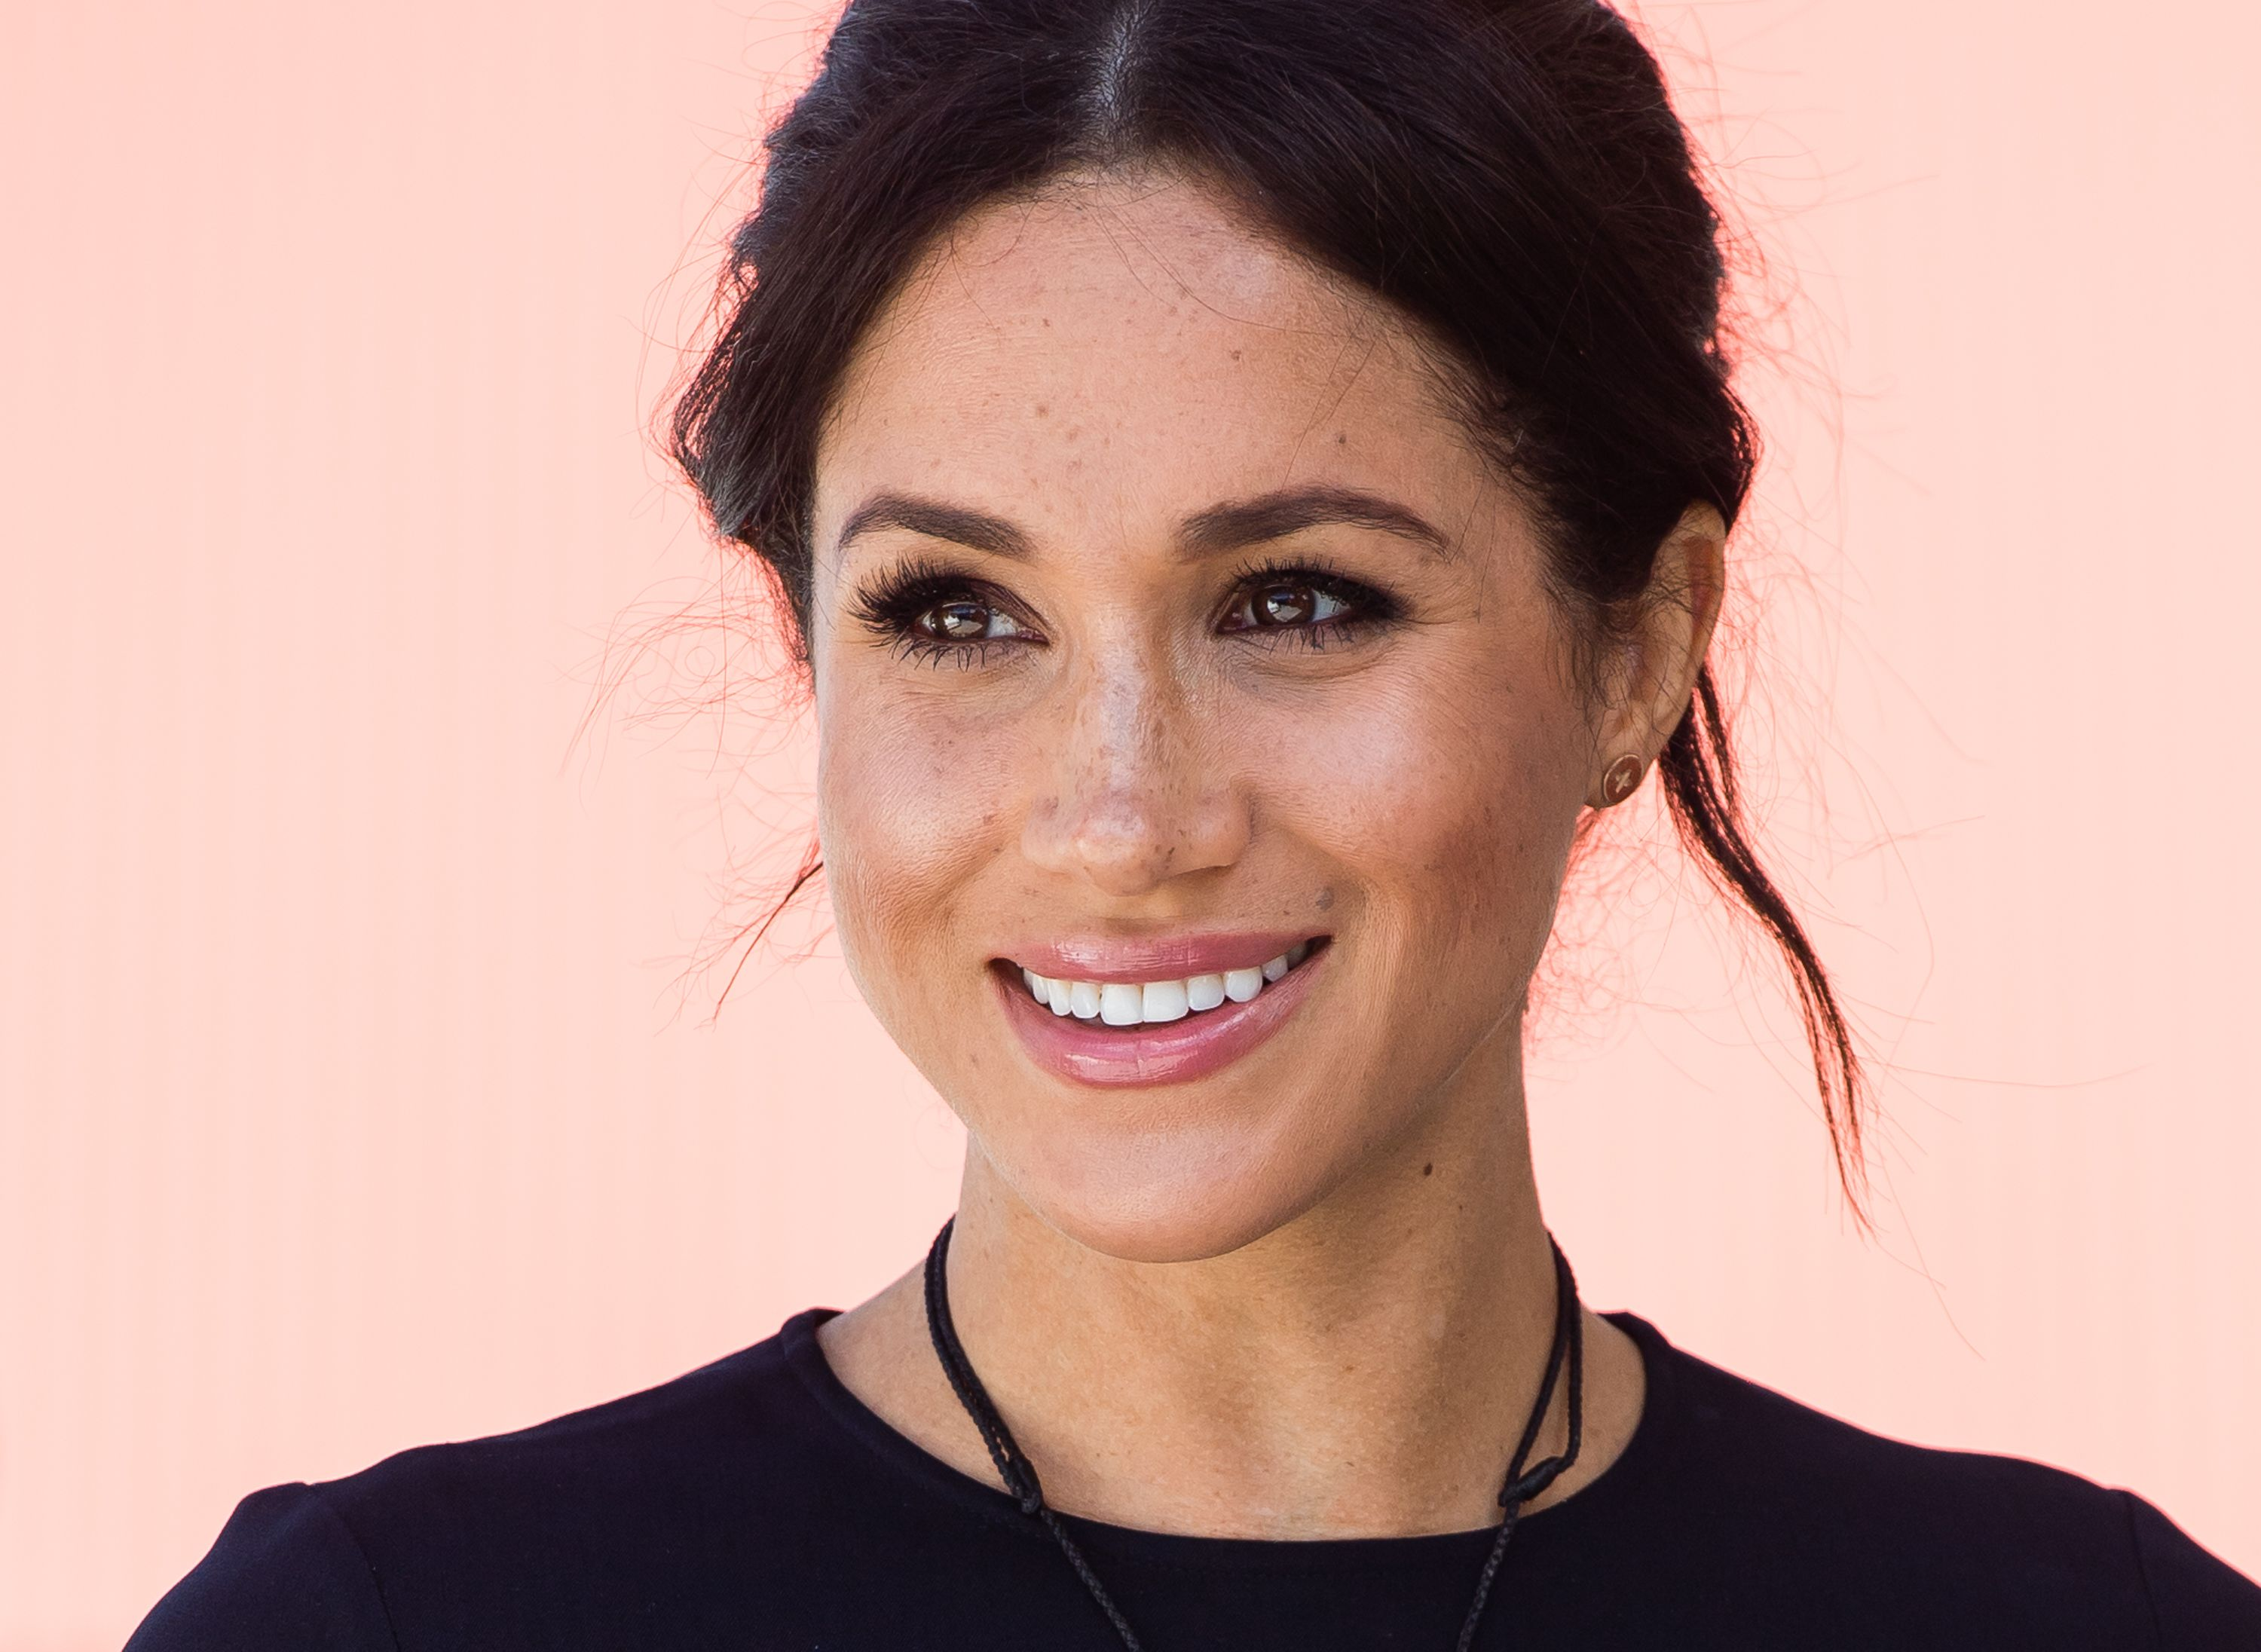 One of Meghan Markle's Favorite Blushes Is Available for $30 at Sephora